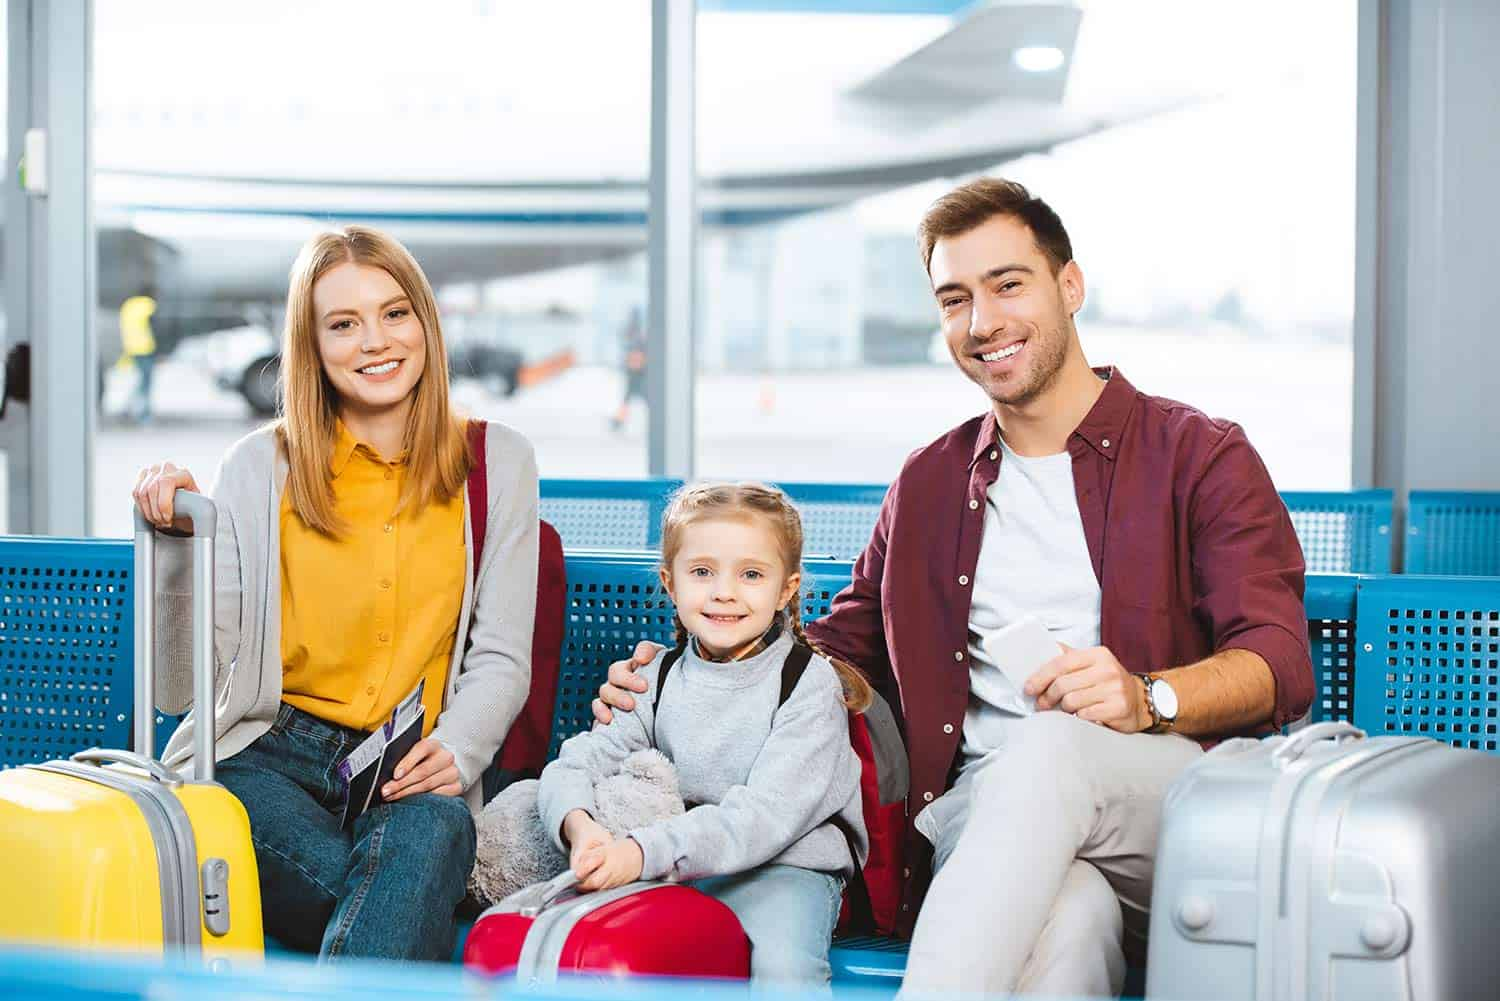 Airport Taxi Peterborough - Cheap and reliable airport transfers to any airport from Peterborough. Airport Taxi Peterborough